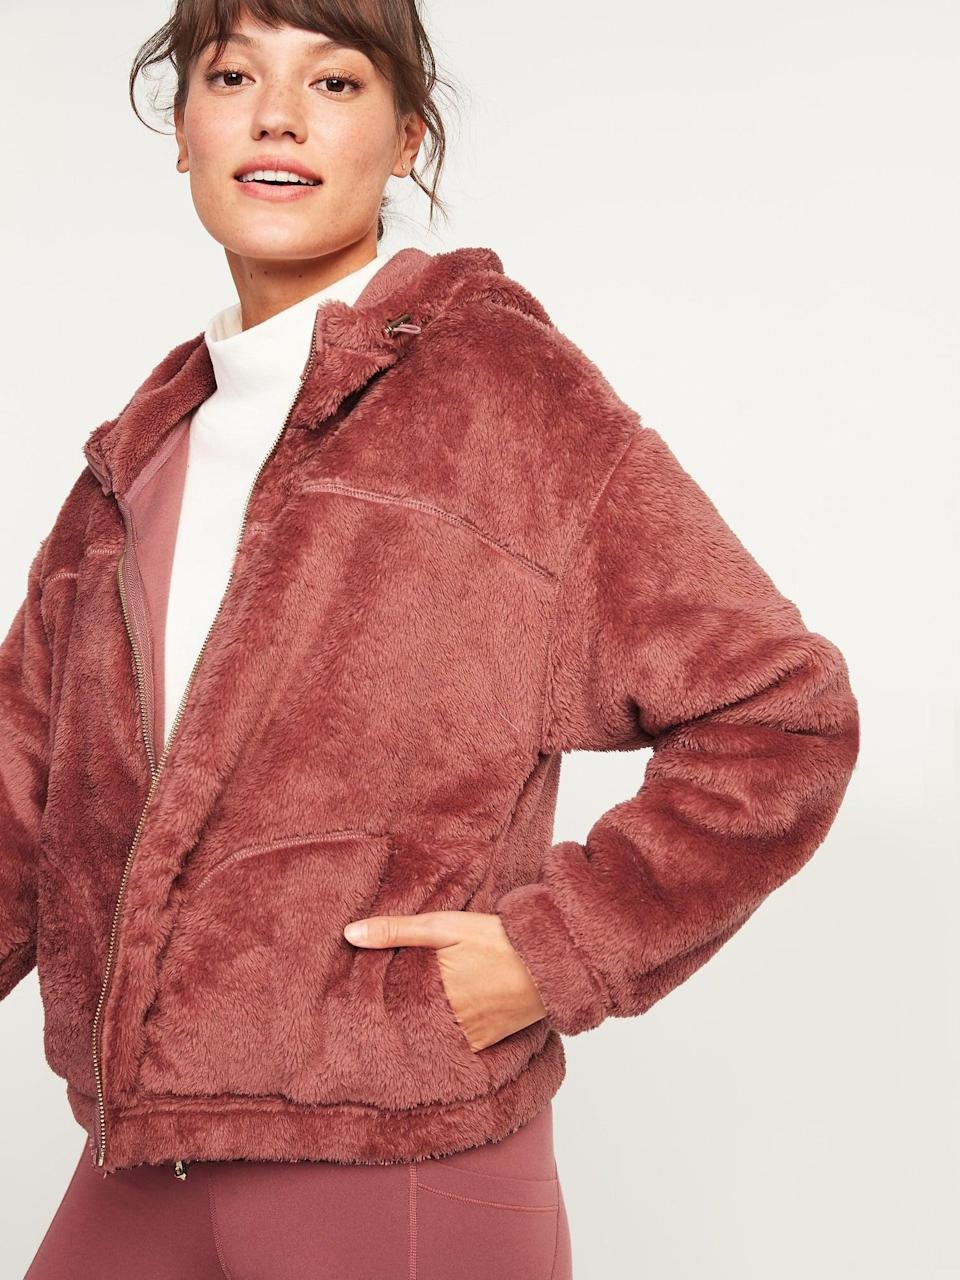 <p>This <span>Loose Cozy Sherpa Crop Hoodie</span> ($50) is ideal for morning runs or lounging around the house.</p>